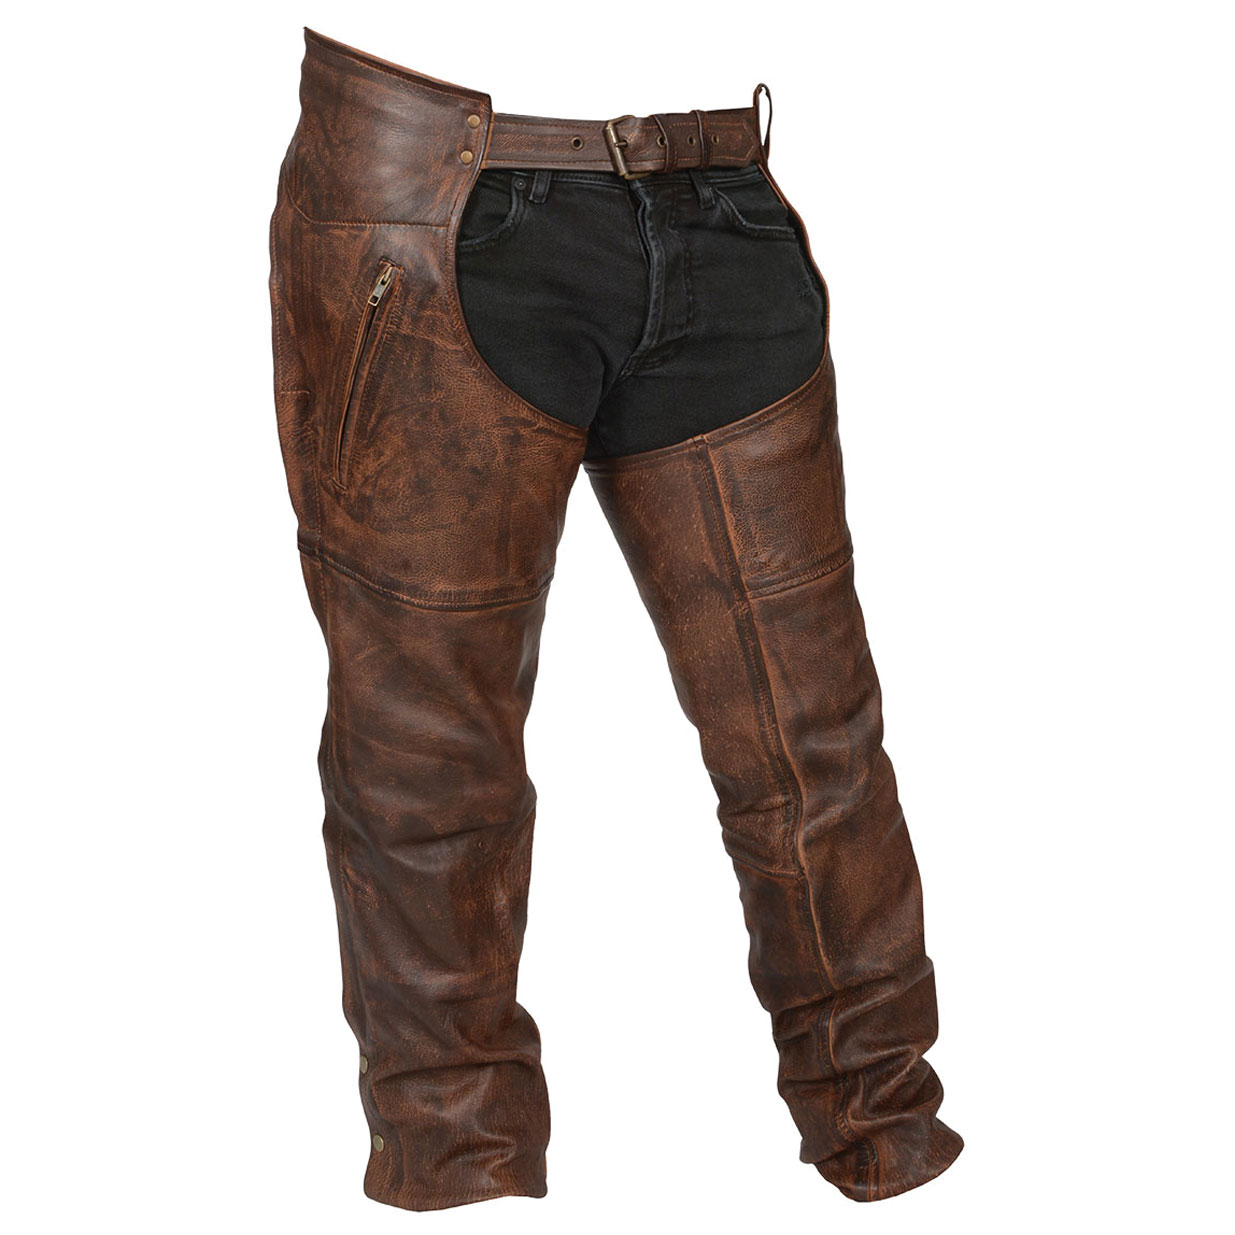 Vance Leathers Men's Classic Lightweight Vintage Brown Leather Chaps